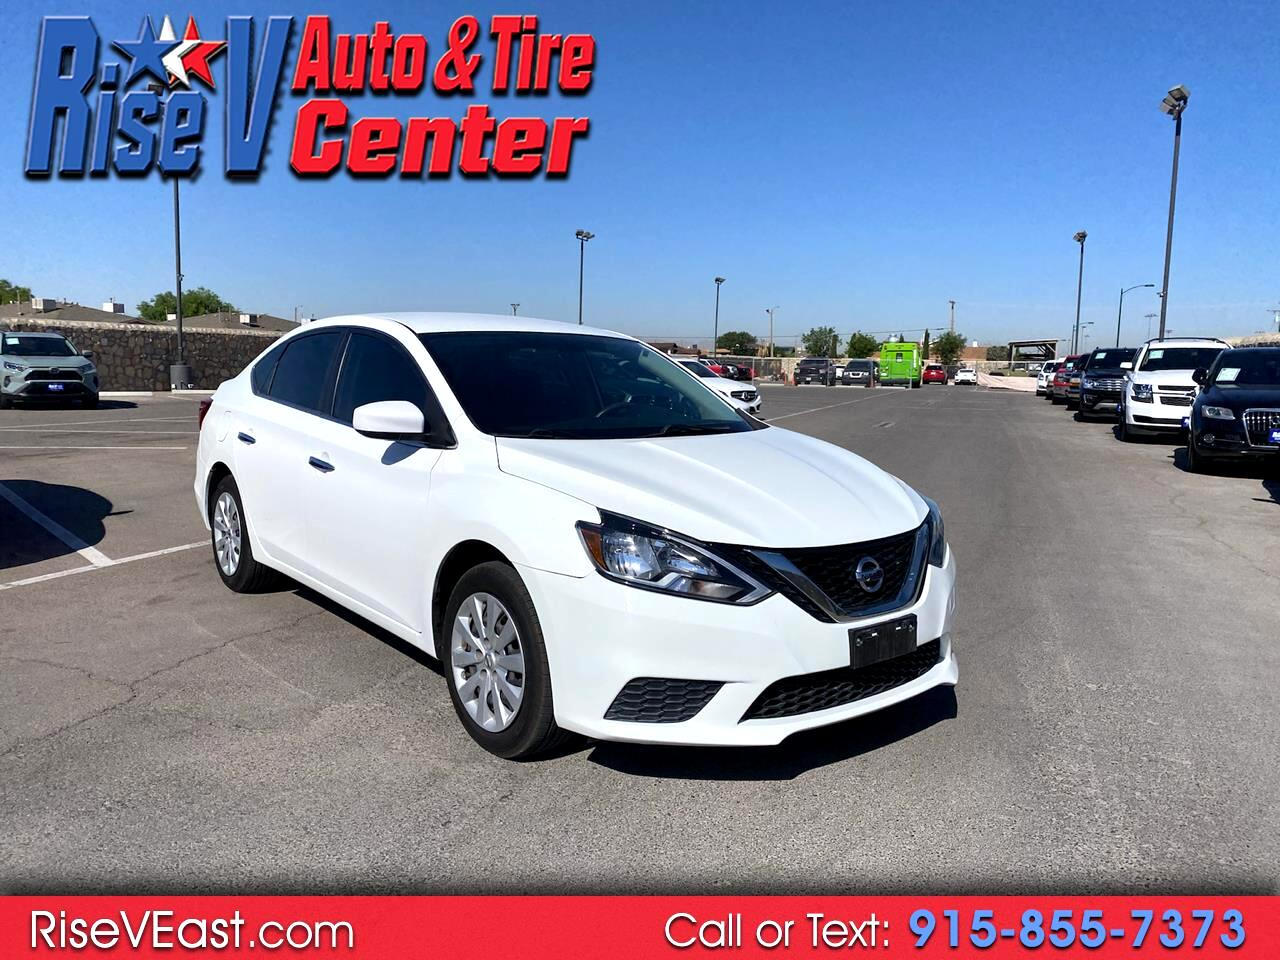 used 2017 nissan sentra sv for sale in el paso tx 79936 rise v auto tire center rise v auto tire center